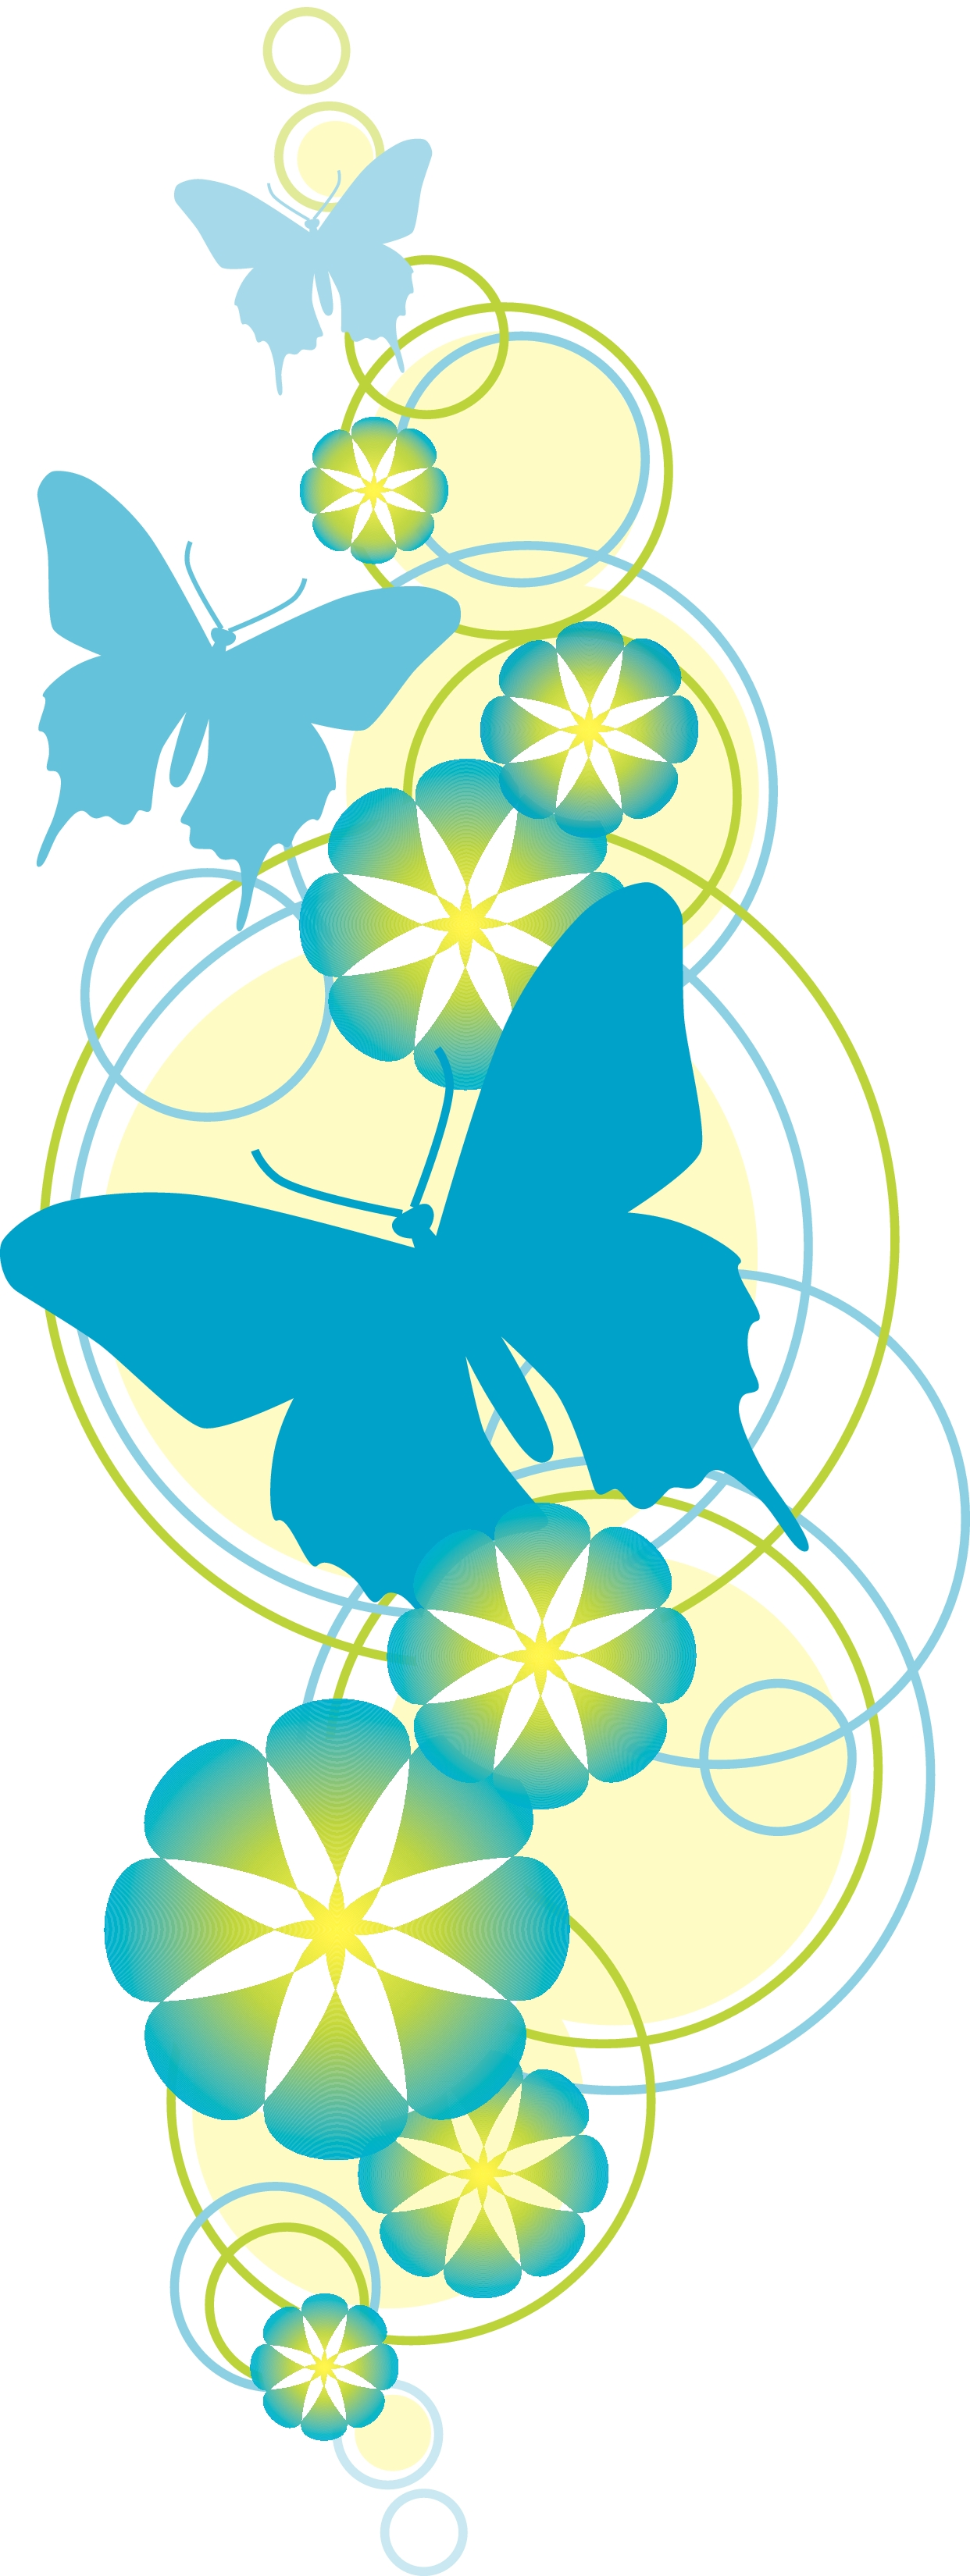 Flowers and butterflies clipart image transparent stock Printable clipart of flowers and butterflies - ClipartFest image transparent stock